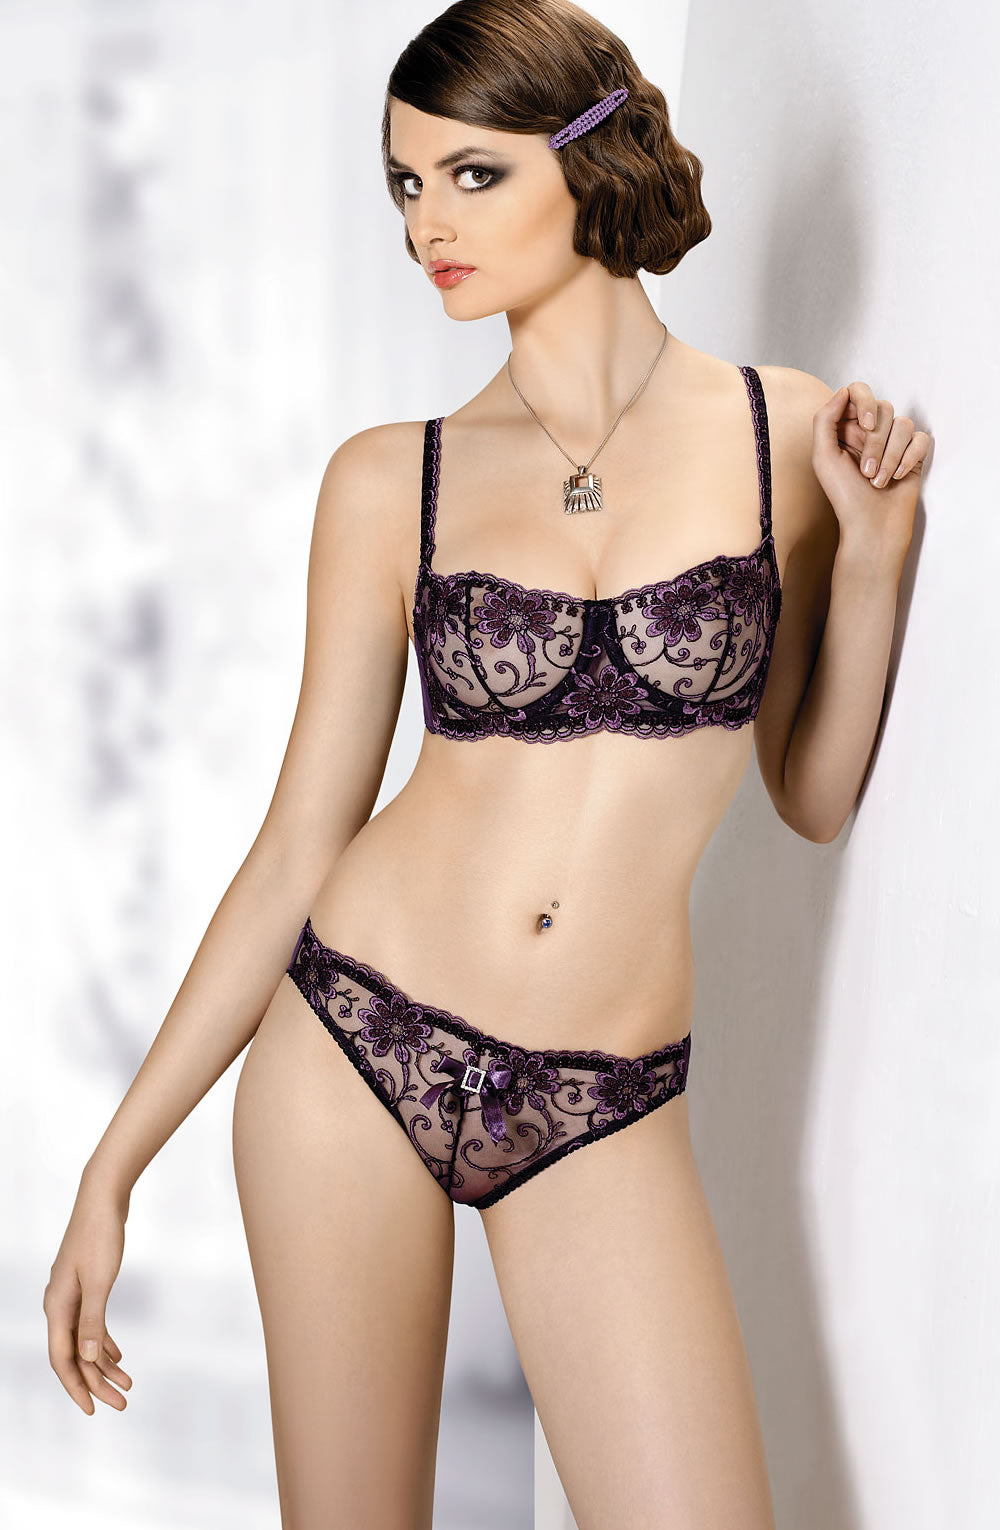 GRACYA PURPLE LACE BALCONETTE BRA B-181 - DEEP PURPLE